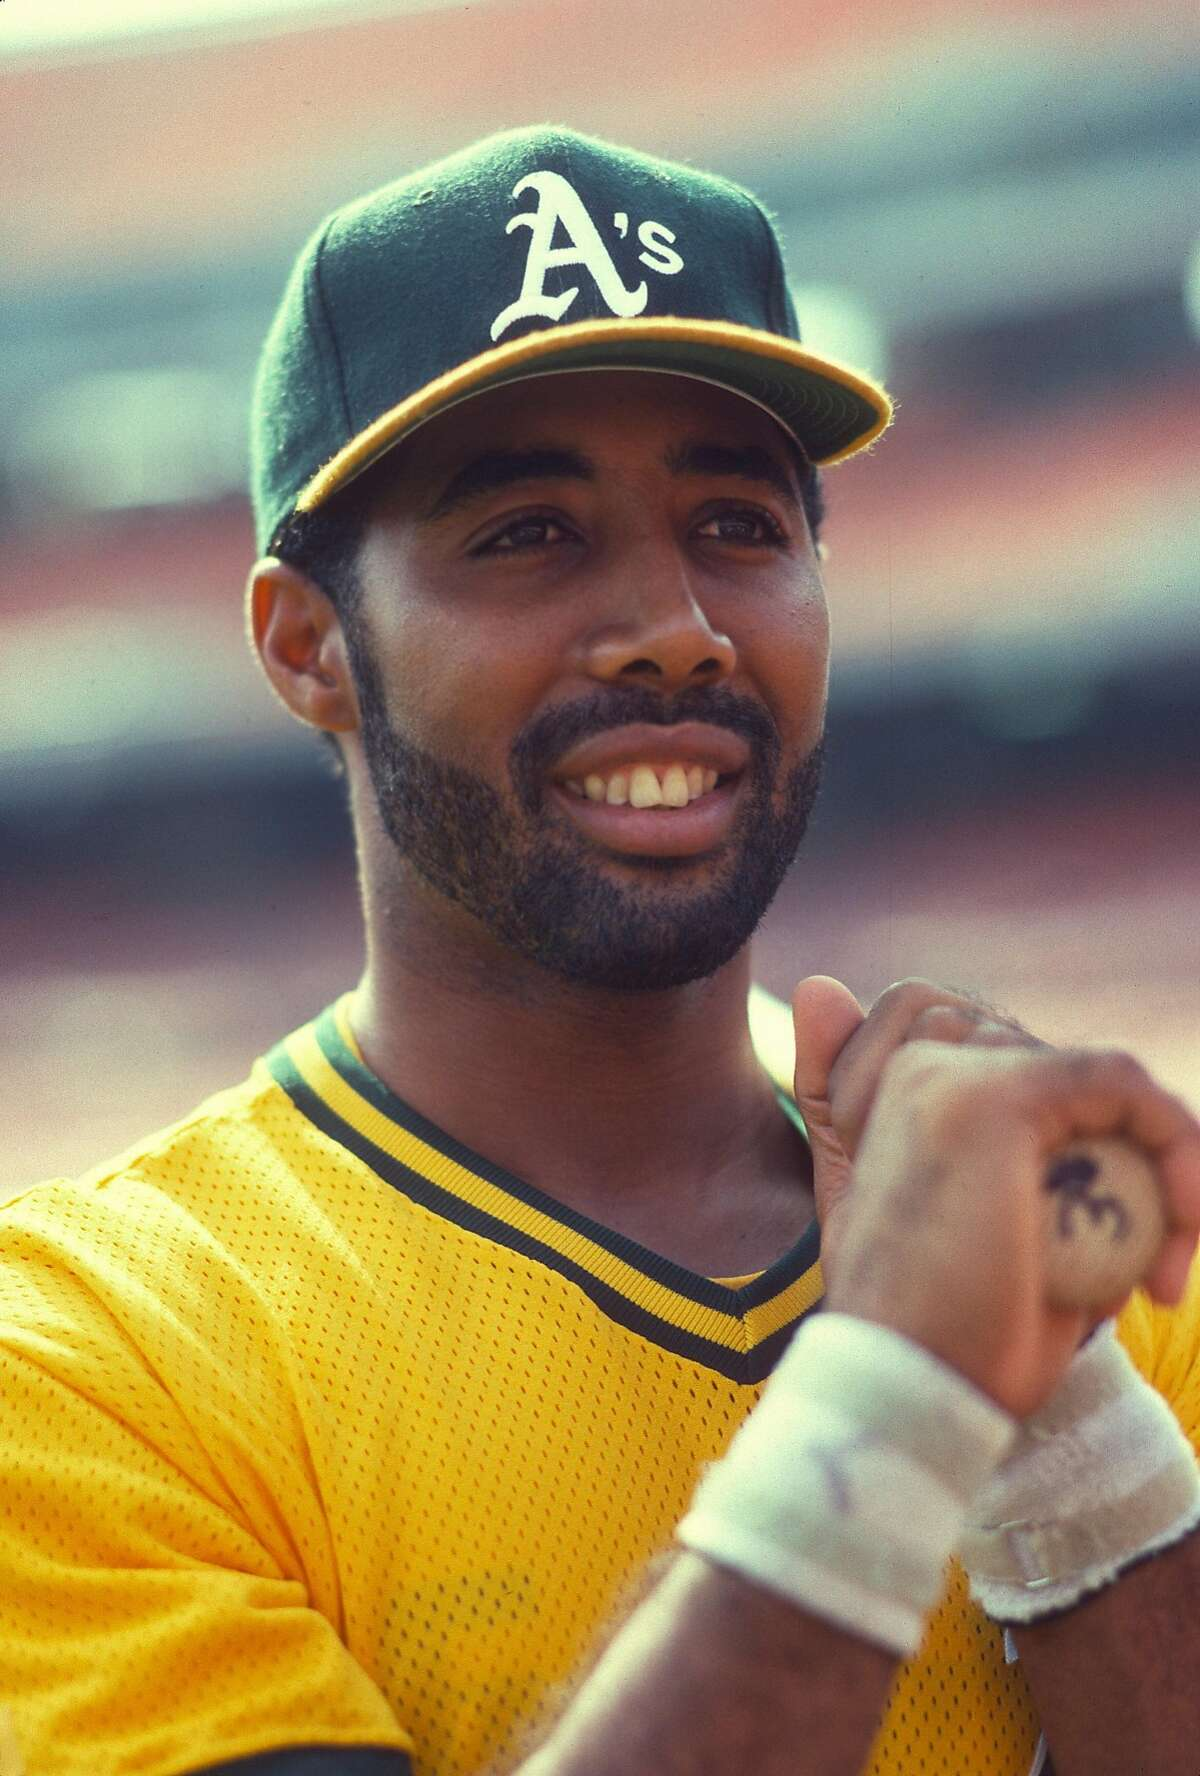 OAKLAND, CA - CIRCA 1991: Harold Baines #3 of the Oakland Athletics looks on during batting practice prior to the start of a Major League Baseball game circa 1991 at the Oakland-Alameda County Coliseum in Oakland, California. Baines played for the Athletics from 1990-92. (Photo by Focus on Sport/Getty Images)